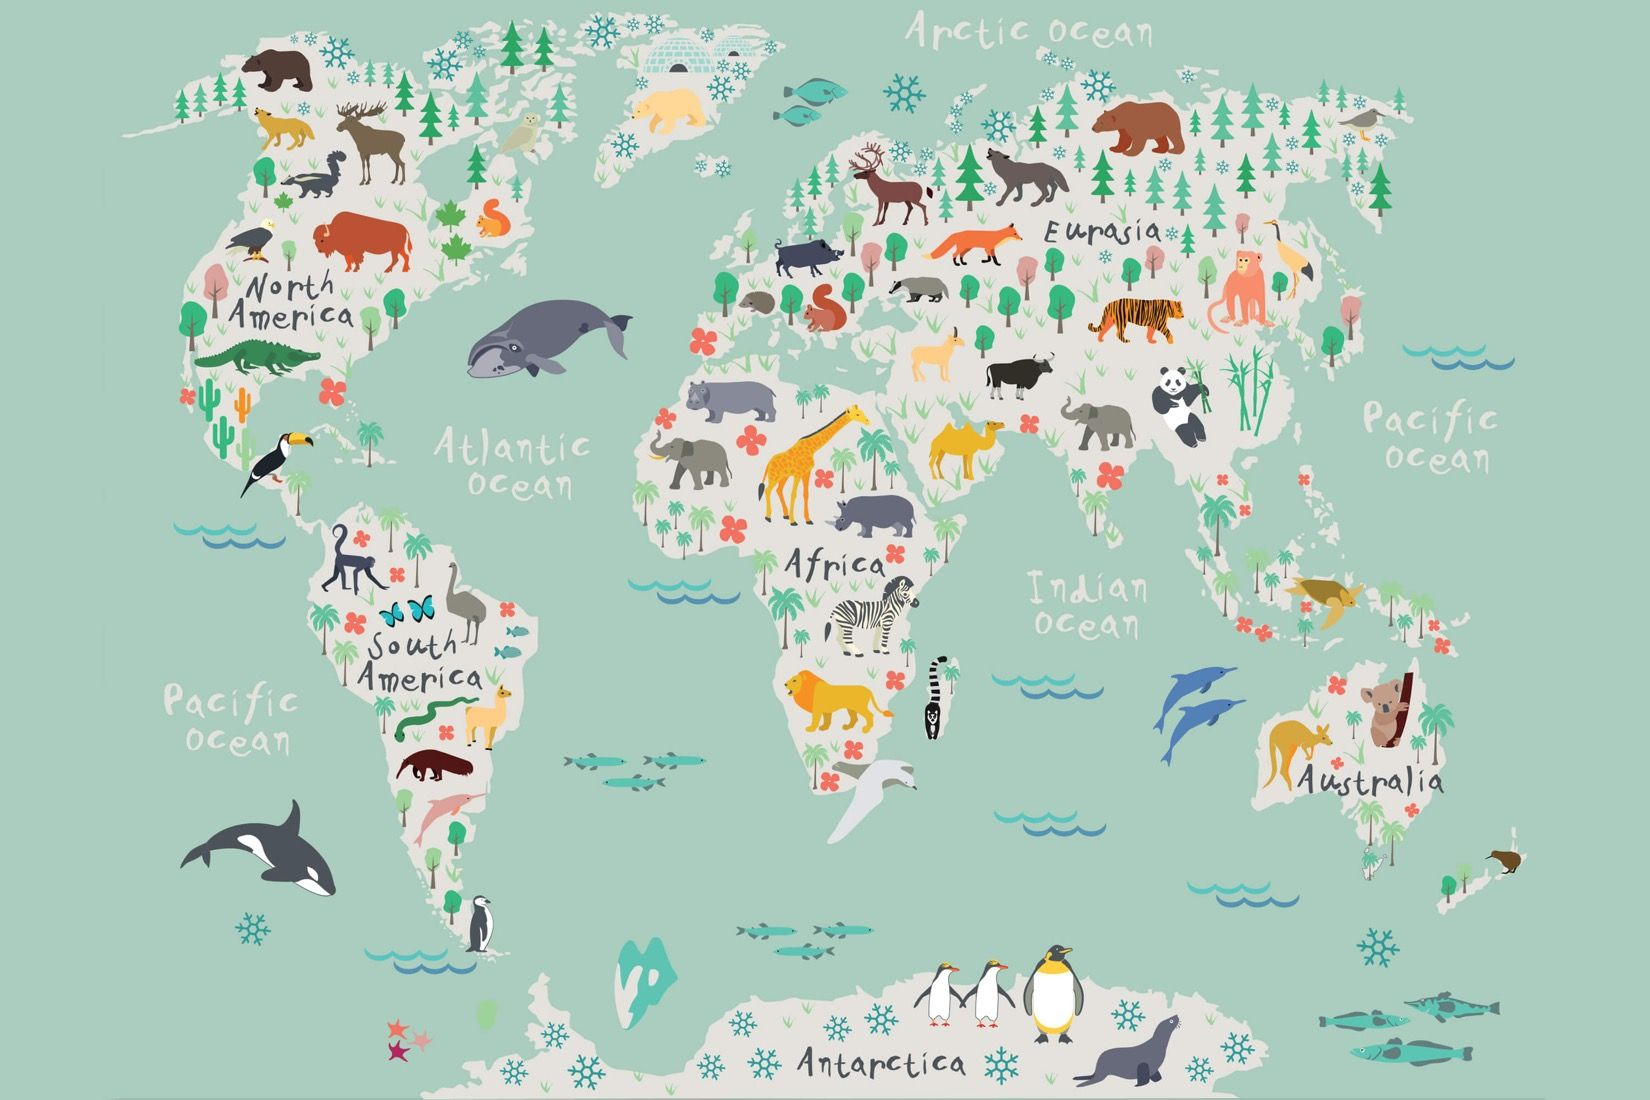 Safari kids map wallpaper mural muralswallpaper baby pinterest safari kids map mural wallpaper custom made to suit your wall size by the uks no1 for murals custom design service and express delivery available gumiabroncs Gallery